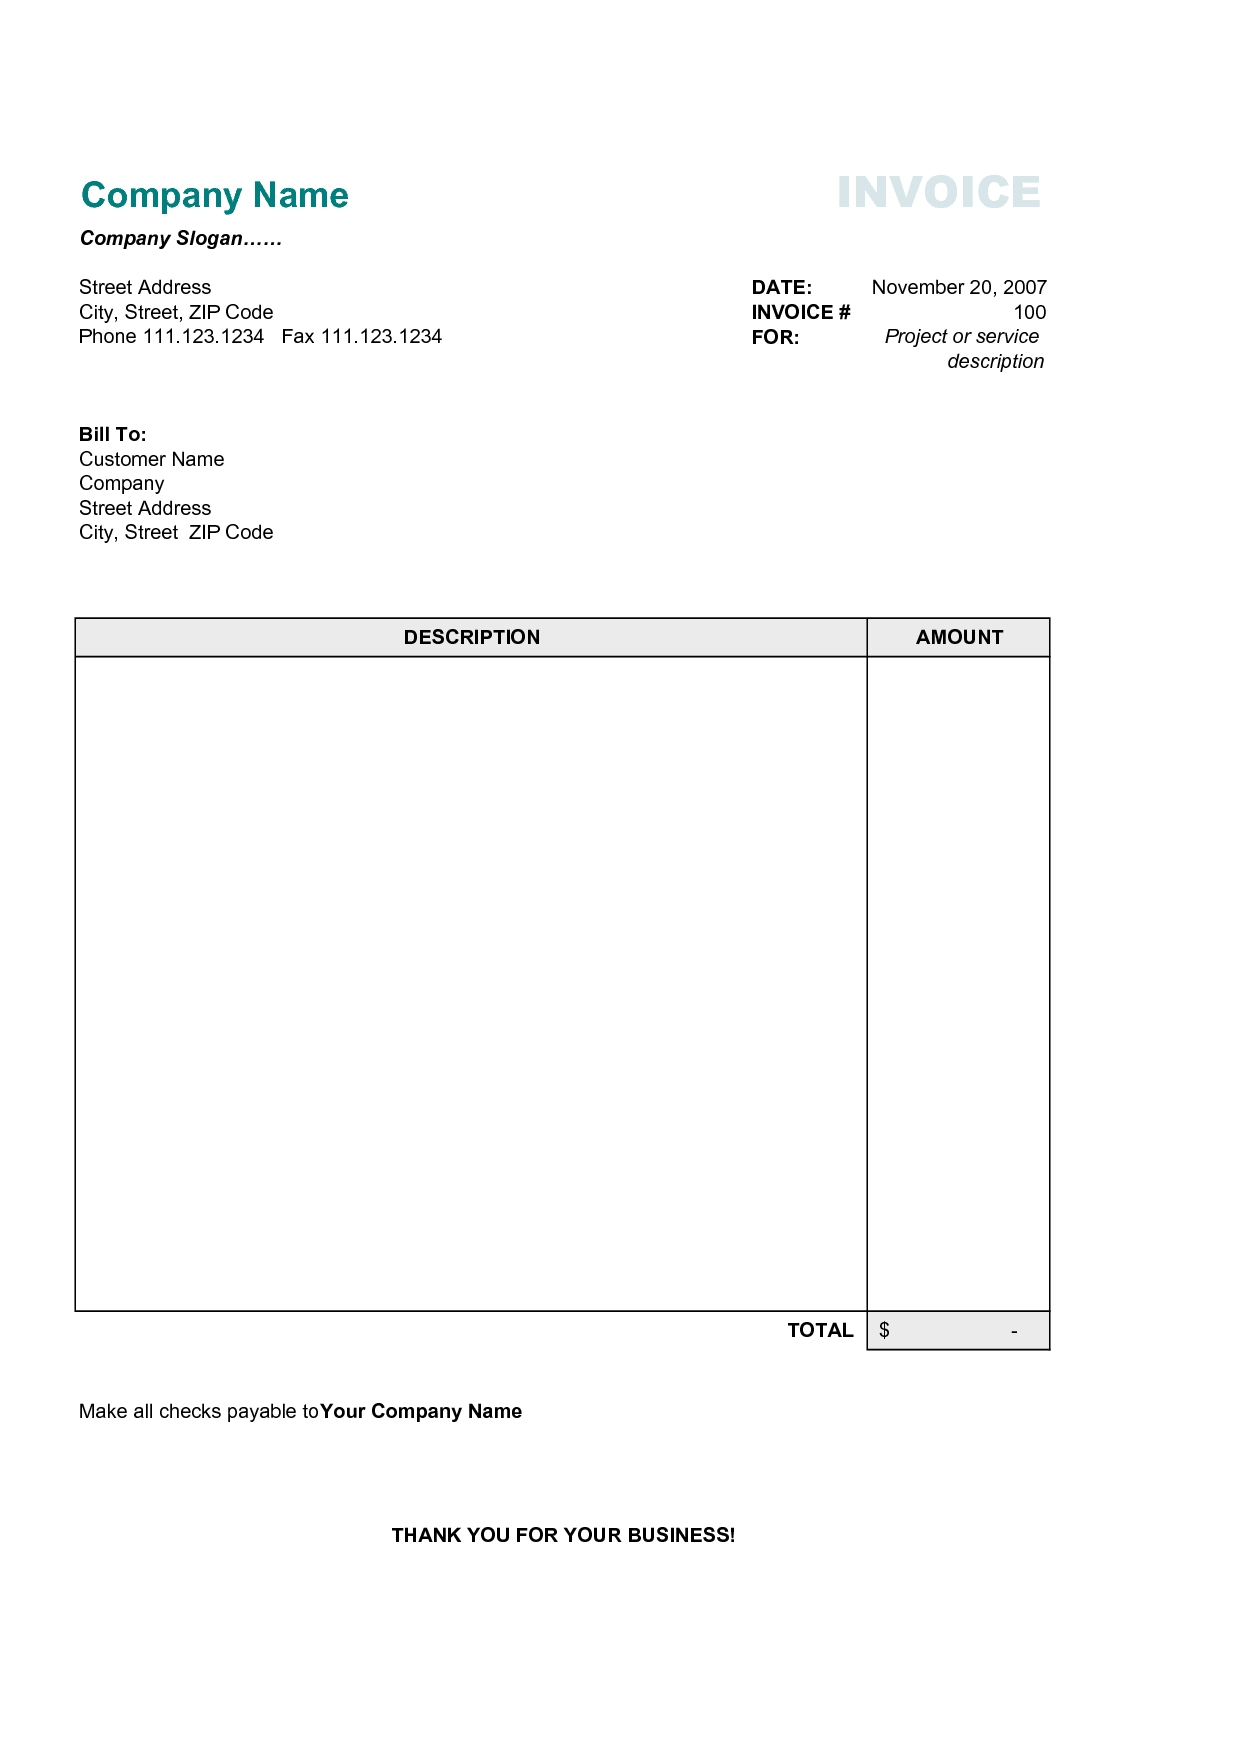 Wonderful Simple Invoice Template In Example Of Simple Invoice